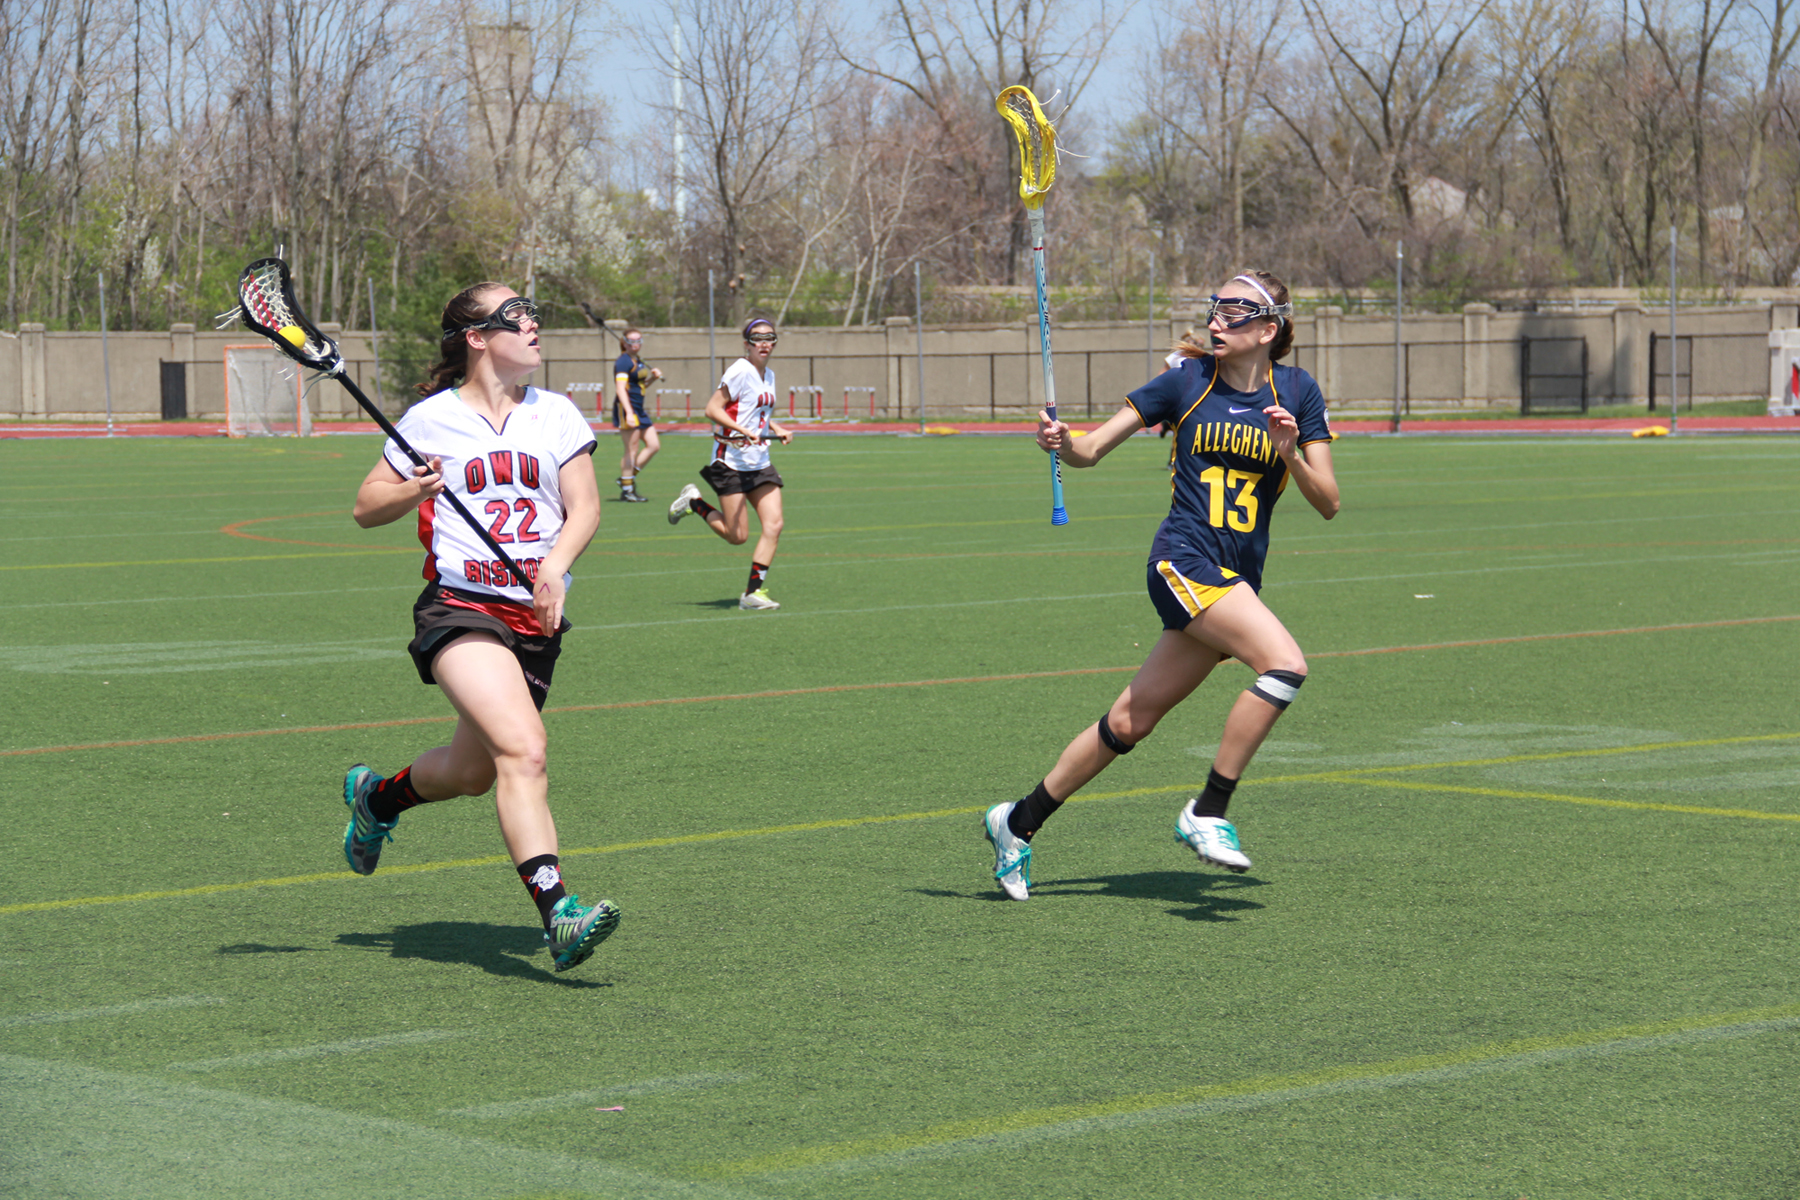 Senior Lori Weischedel looks to pass the ball in the Lady Bishops 12-17 loss to Allegheny April 26 at Selby Stadium.